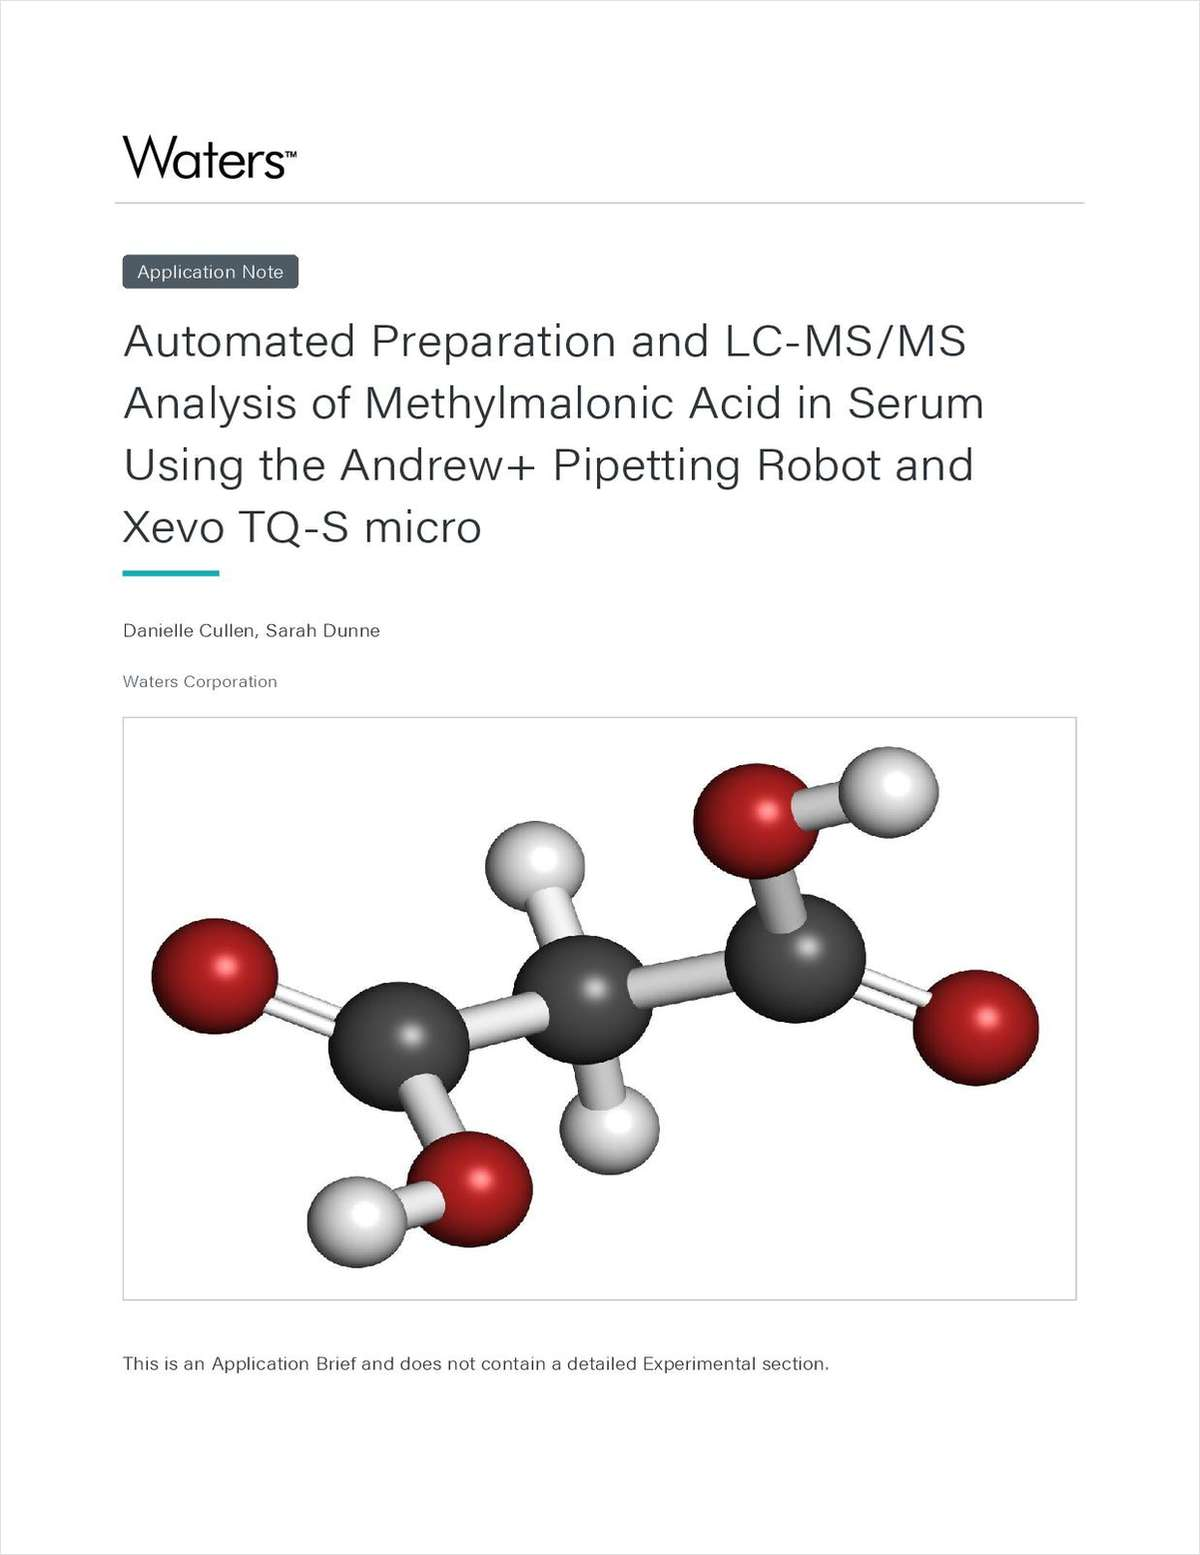 Automated Preparation and LC-MS/MS Analysis of Methylmalonic Acid in Serum Using the Andrew+ Pipetting Robot and Xevo TQ-S Micro